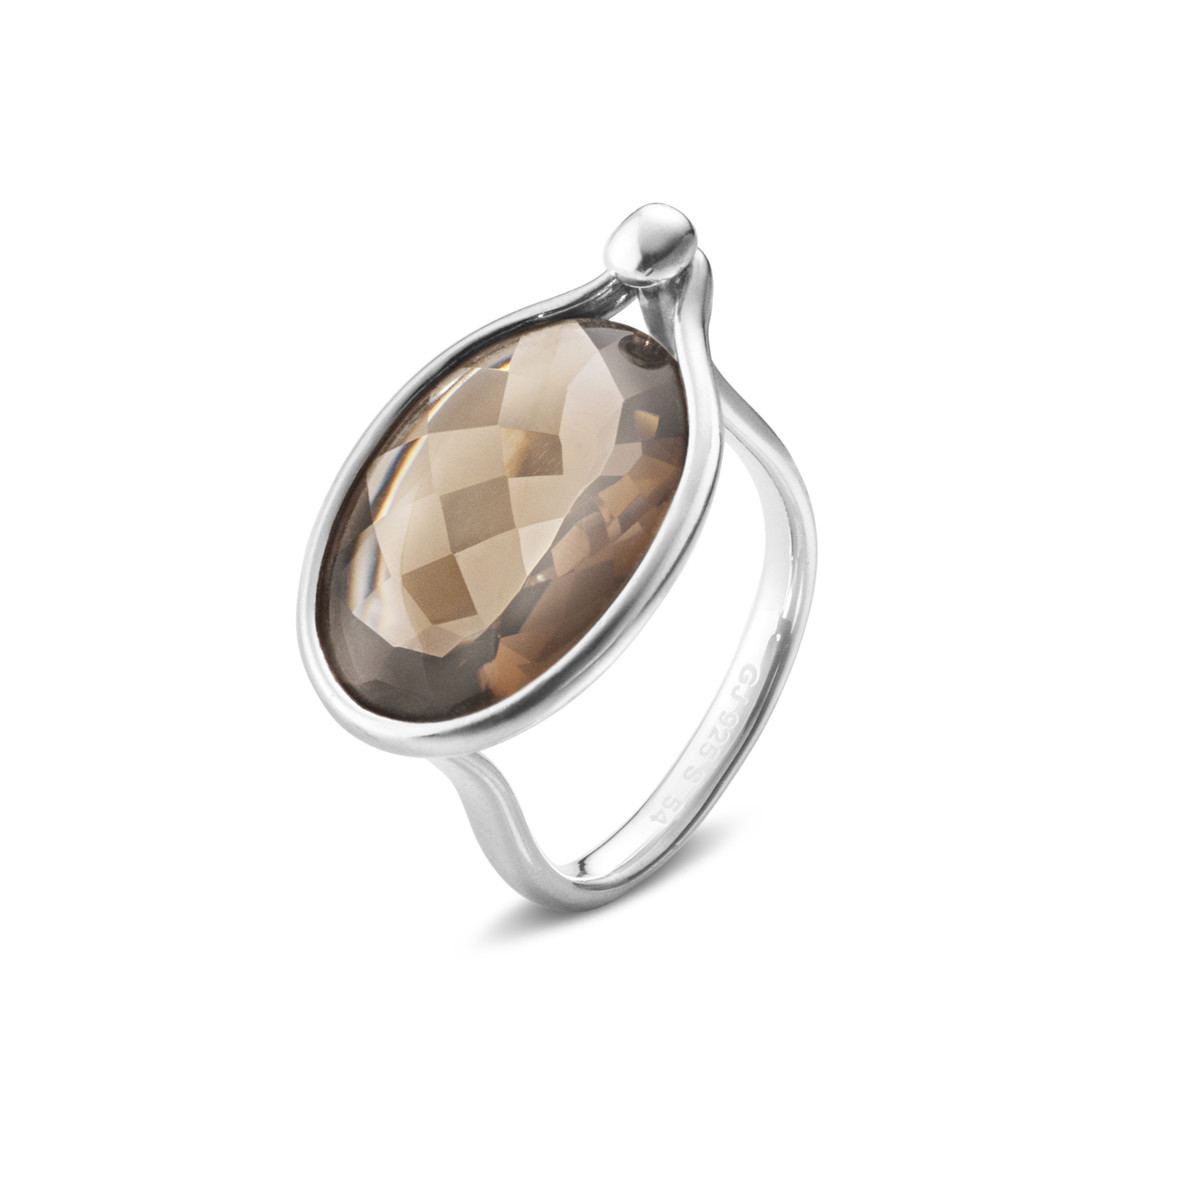 Image of   Georg Jensen SAVANNAH ring - 10003097 Størrelse 55